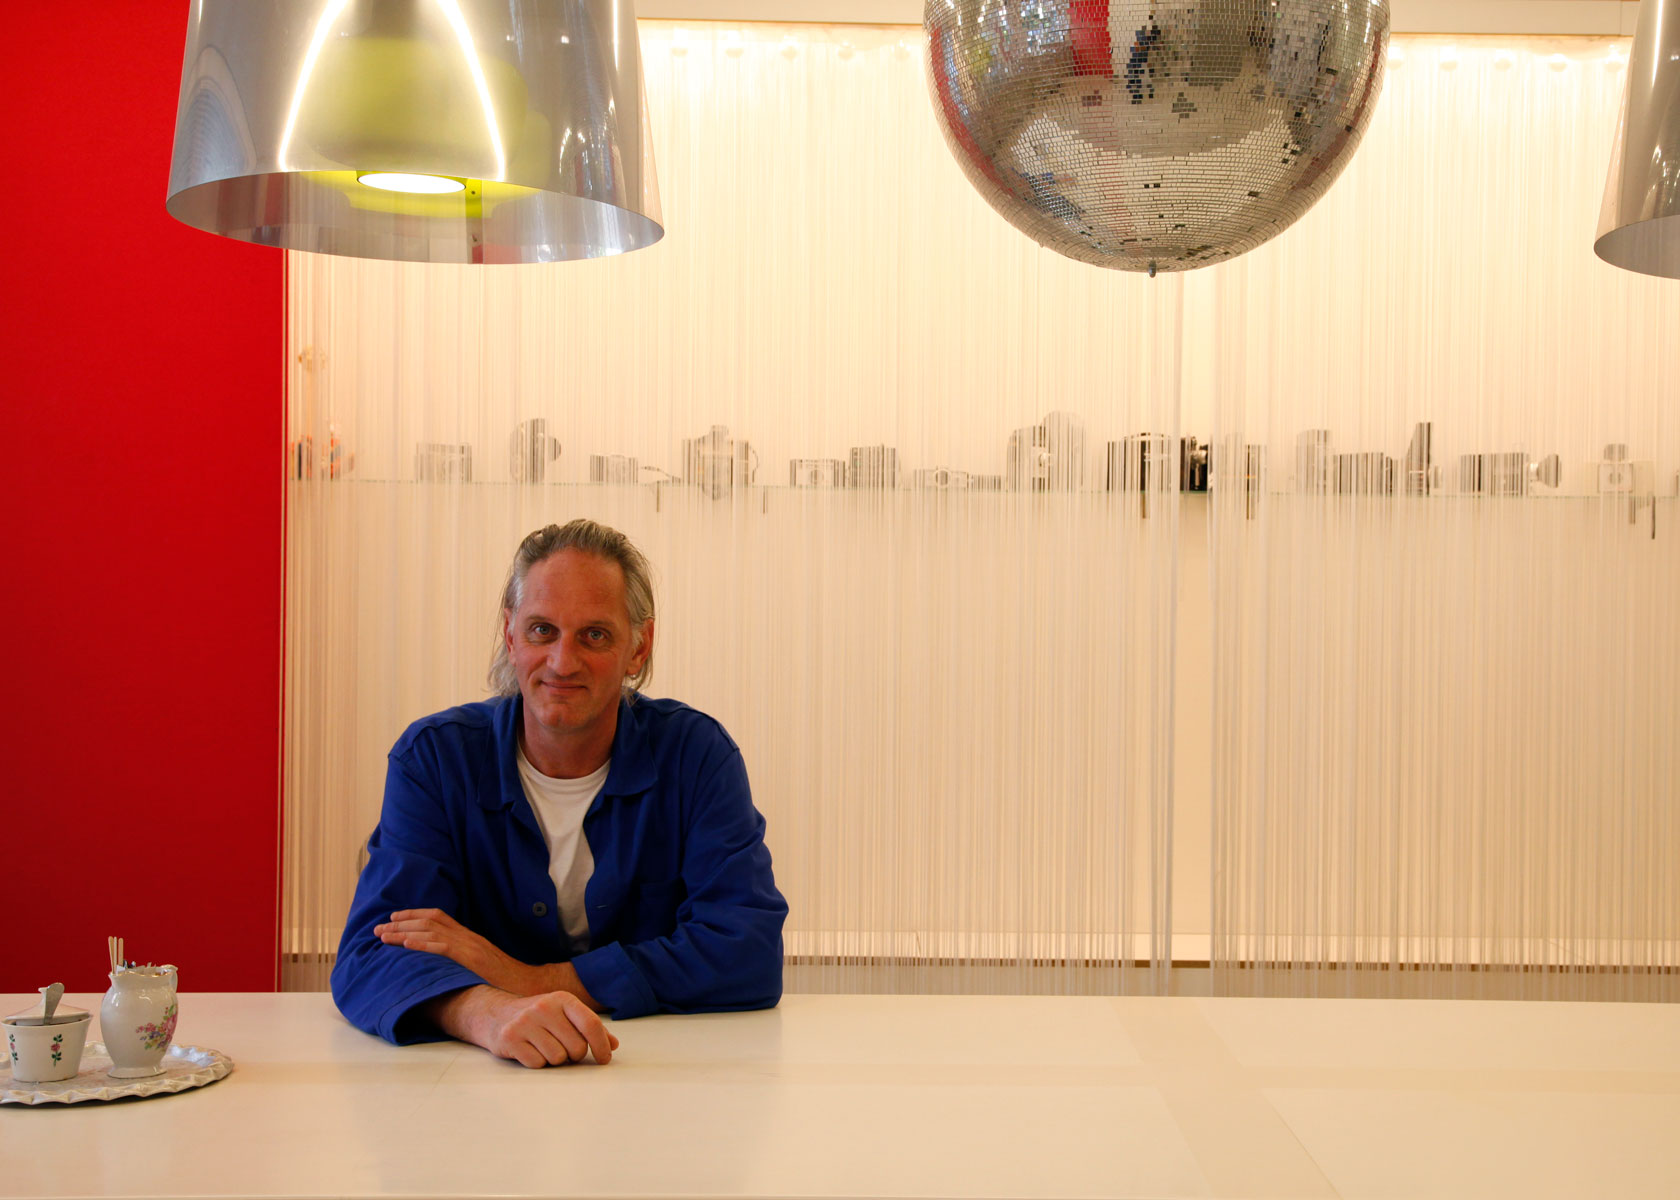 Kessels sitting under a disco ball in a red room with a large display of cameras